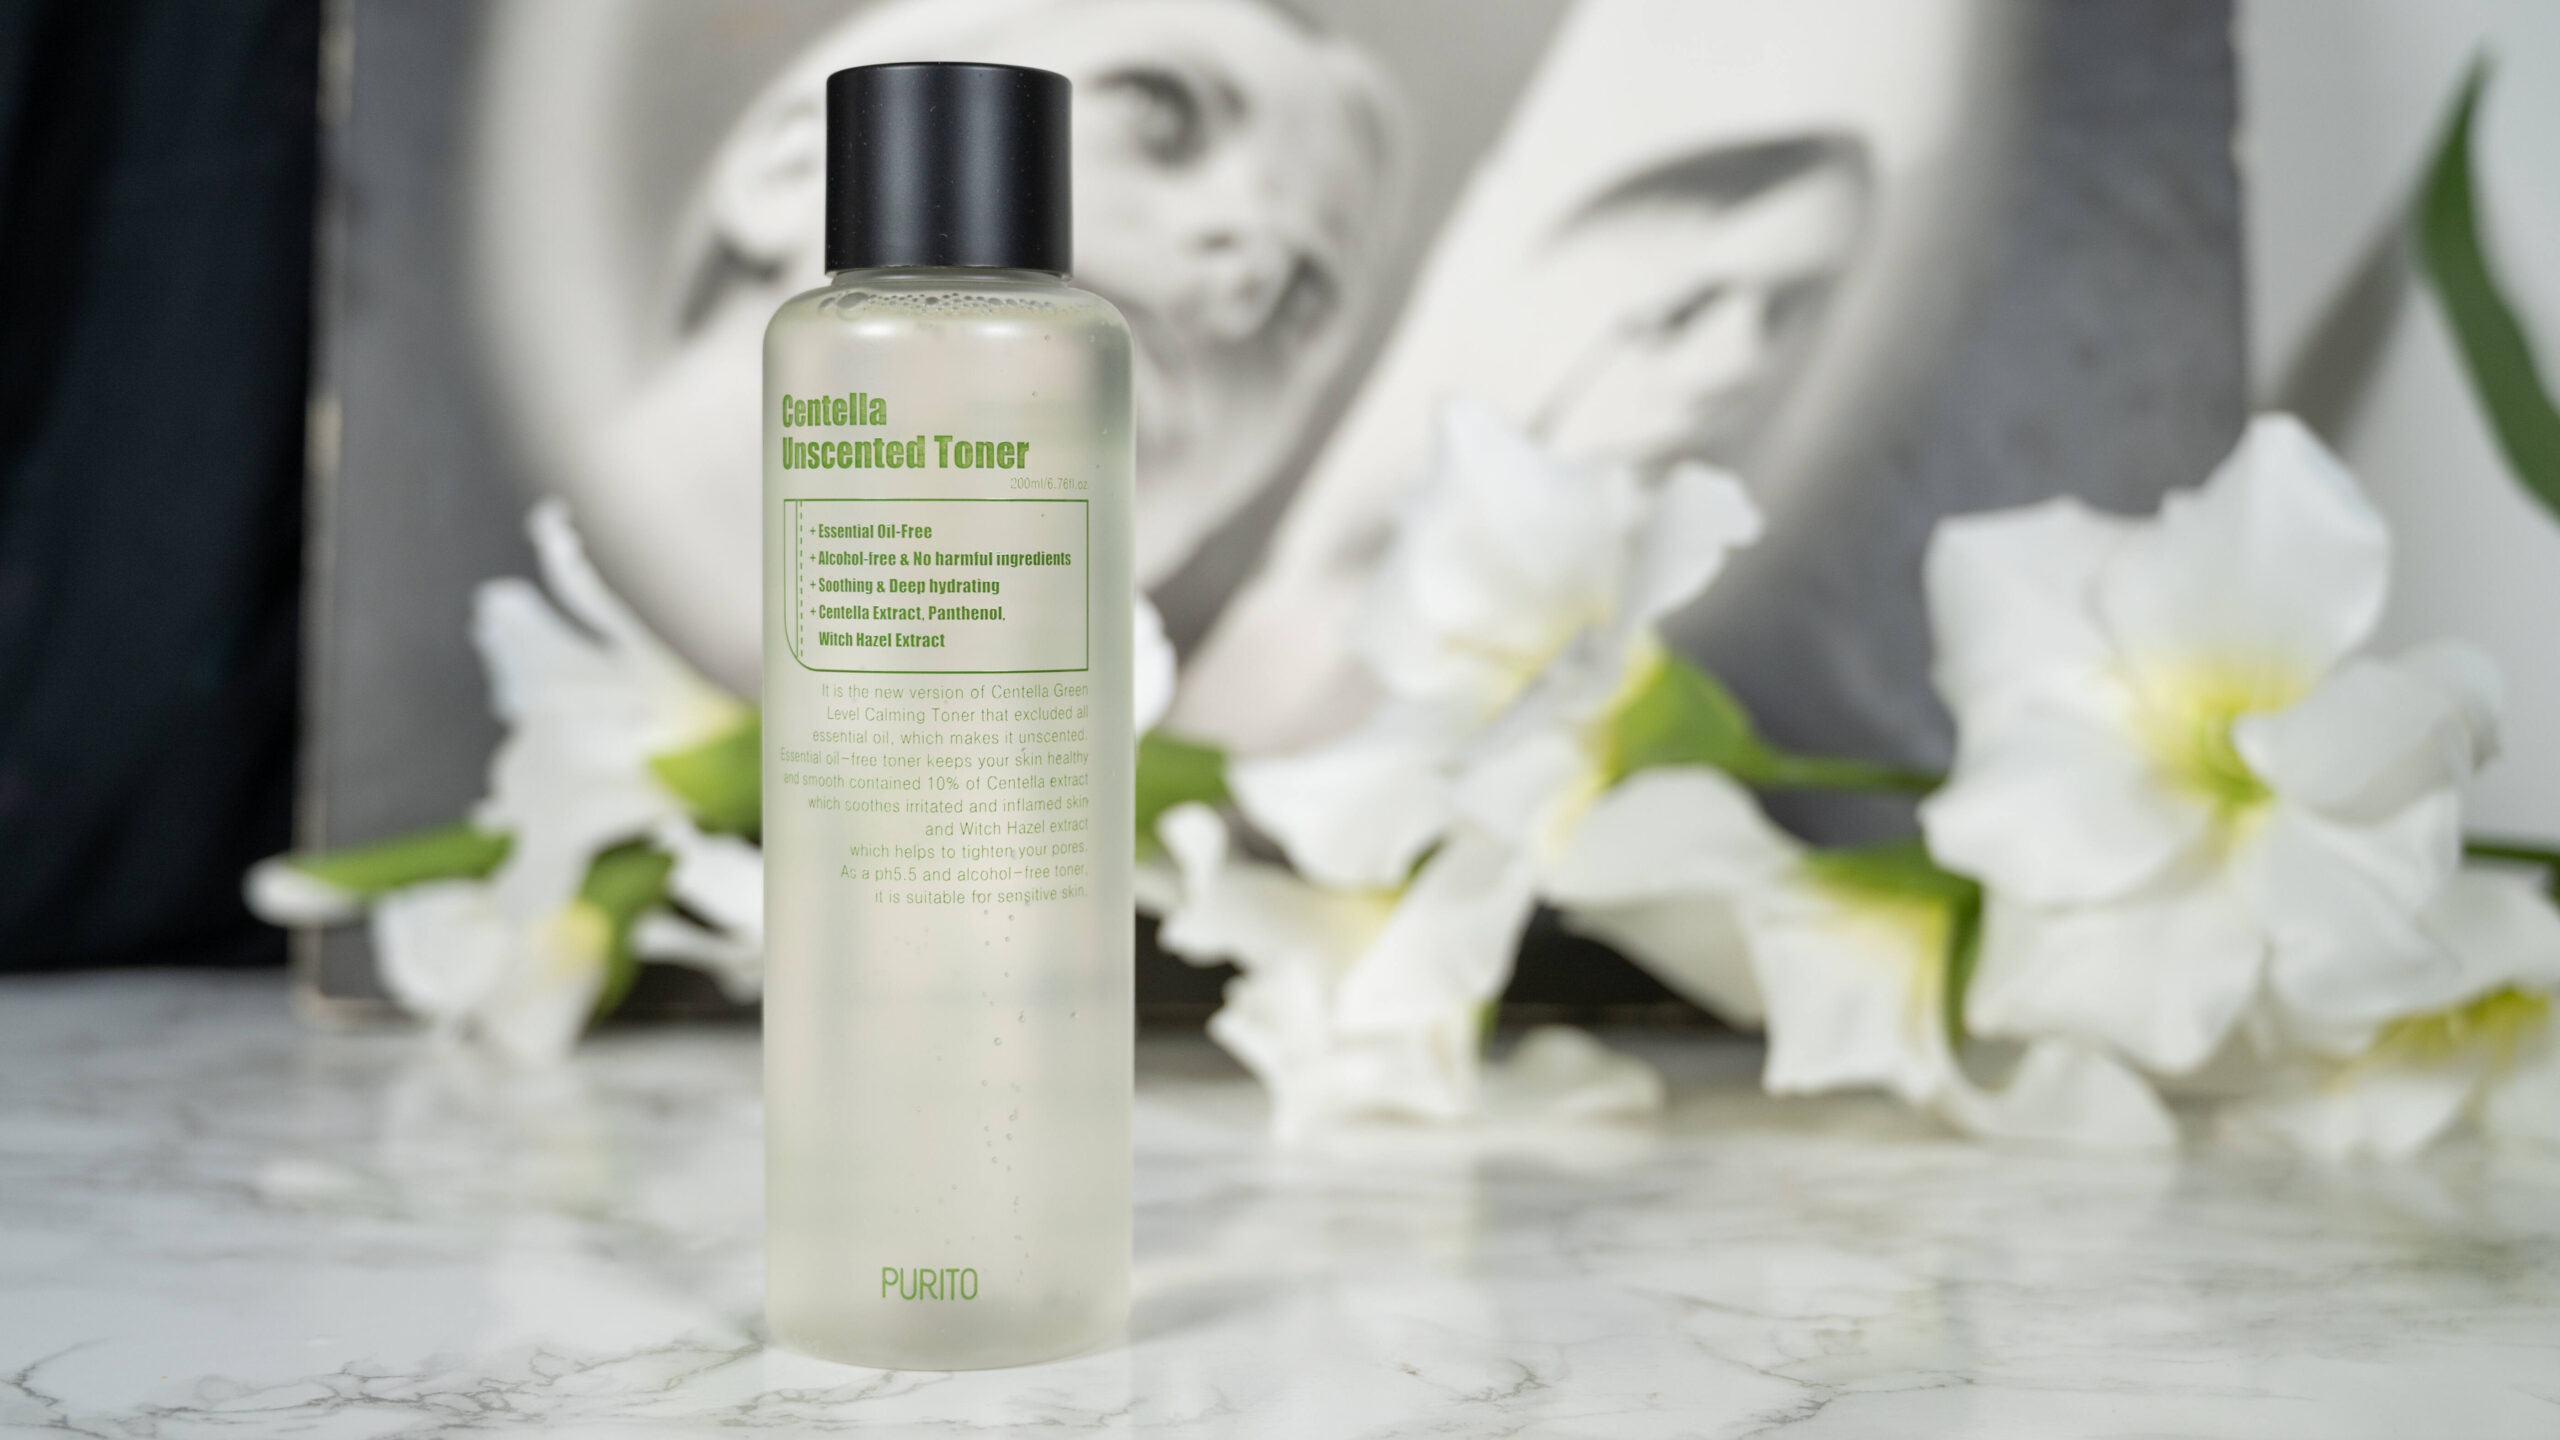 Purito Centella Unscented Toner Review